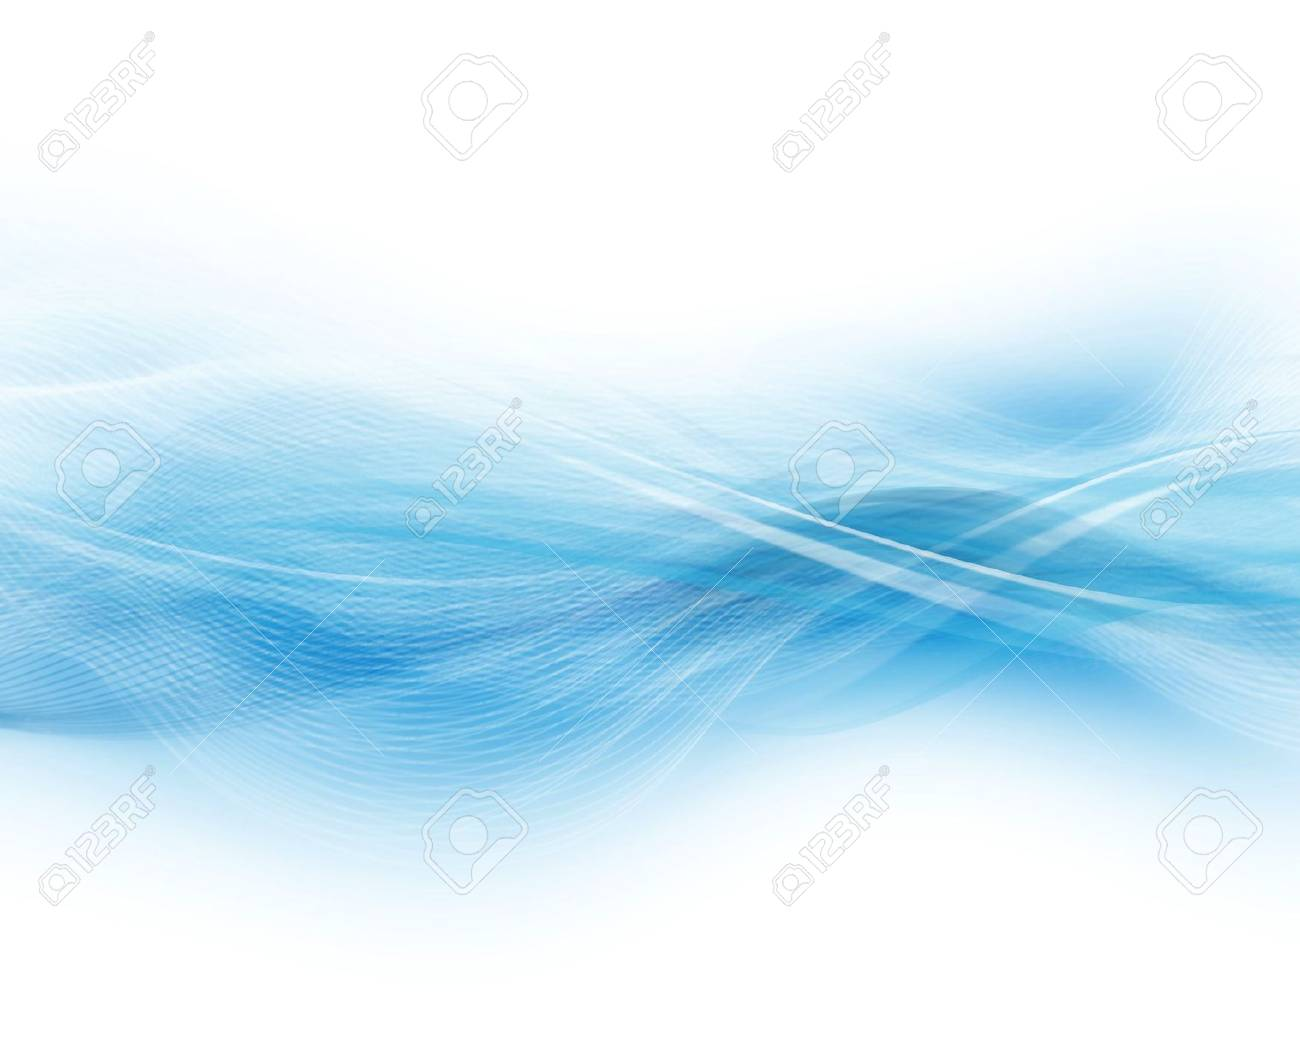 Blue And White Abstract Modern Background - 16556491